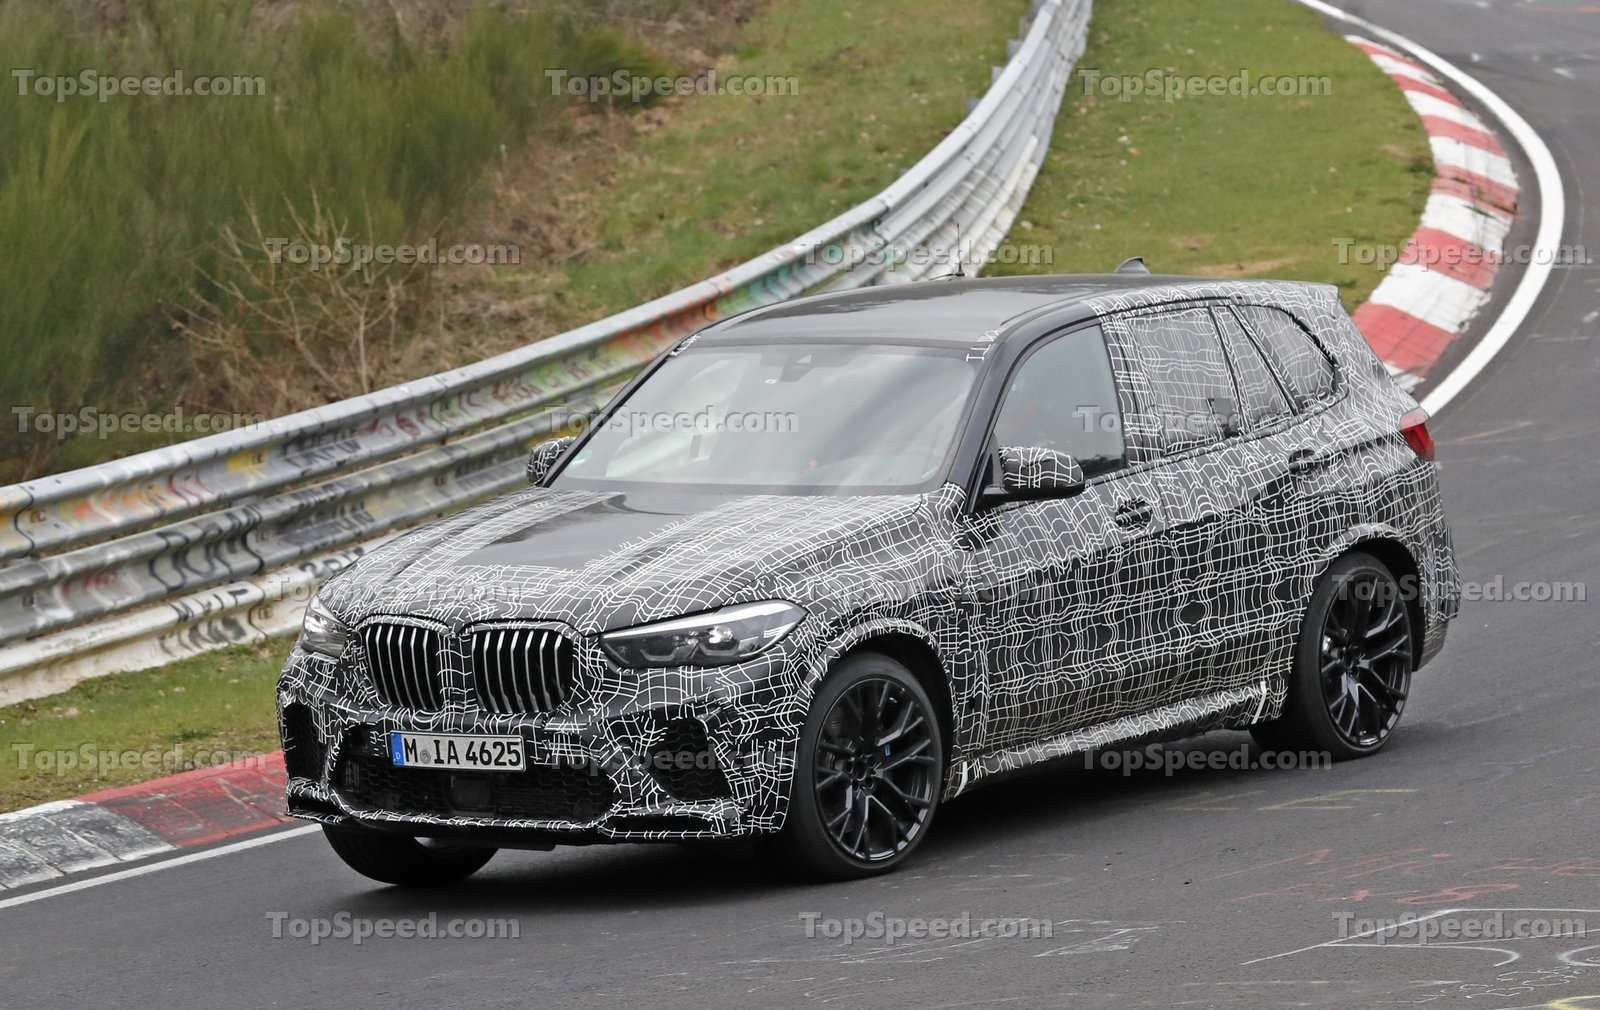 61 All New 2020 Next Gen BMW X5 Suv Spy Shoot